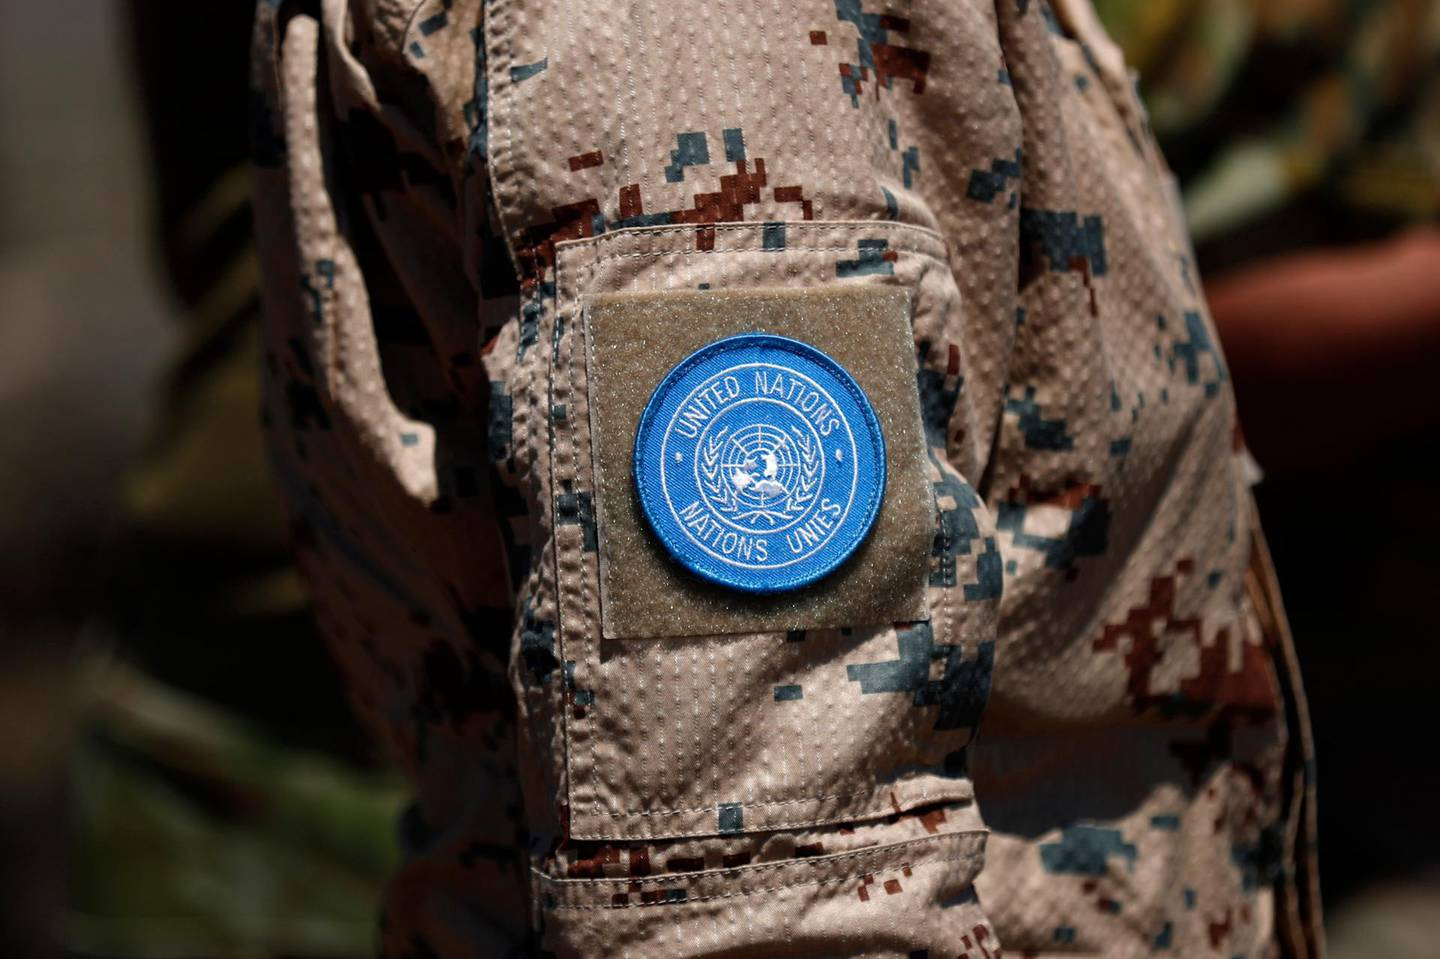 epa08675003 A United Nations patch on an UNDOF (United Nations Disengagement  Observer force) soldier's uniform at Ben Tal overlooking the Israeli-Syrian border, 17 August 2020 (issued 17 September 2020). The United Nations in the year 2020 mark the 75th anniversary, and some peacekeeping missions remain in the region as a reflection of the presence of UN in the Middle East, according to the UN. The United Nations Disengagement Observer Force (UNDOF) was established by the Security Council on 1974, the mandate is to maintain the ceasefire between the parties and supervise the disengagement of Israeli and Syrian forces as well as the so-called areas of separation (a demilitarized buffer zone) and limitation (where Israeli and Syrian troops and equipment are restricted) in the Golan Heights.  EPA/ATEF SAFADI